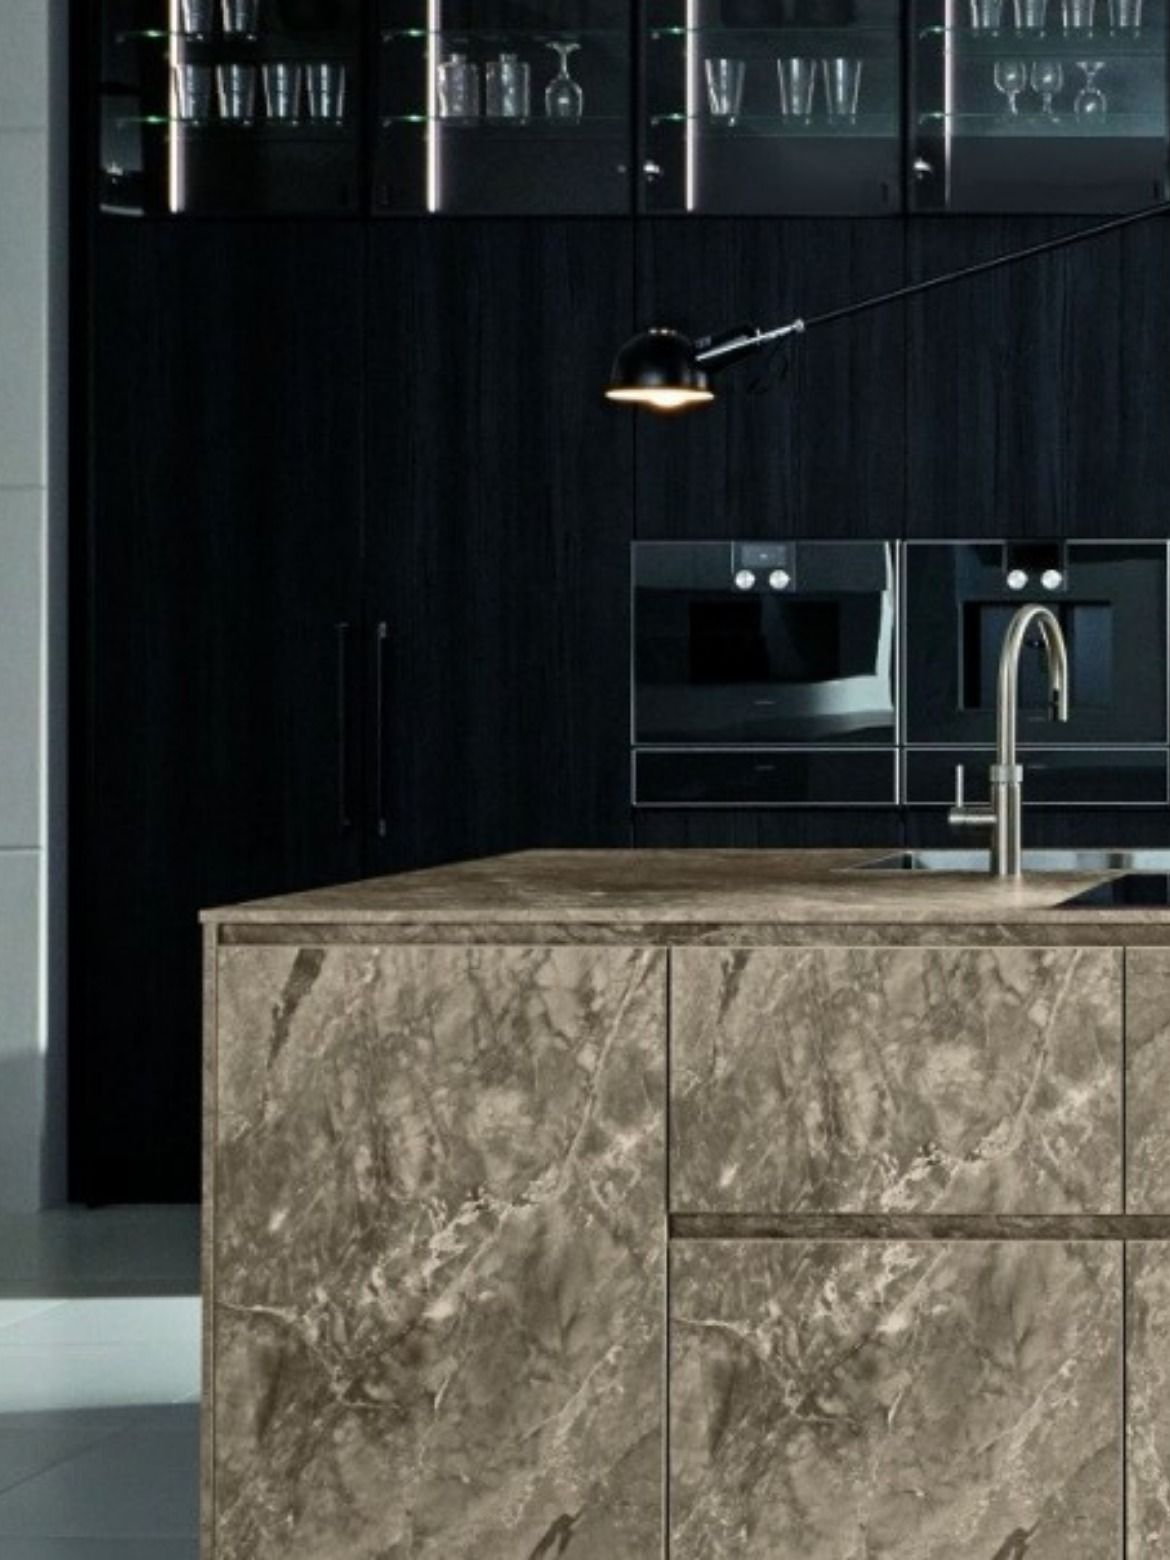 Pronorm Launches Luxury Laminates For Worksurfaces Kitchens Review Laminates Kitchen Reviews Laminate